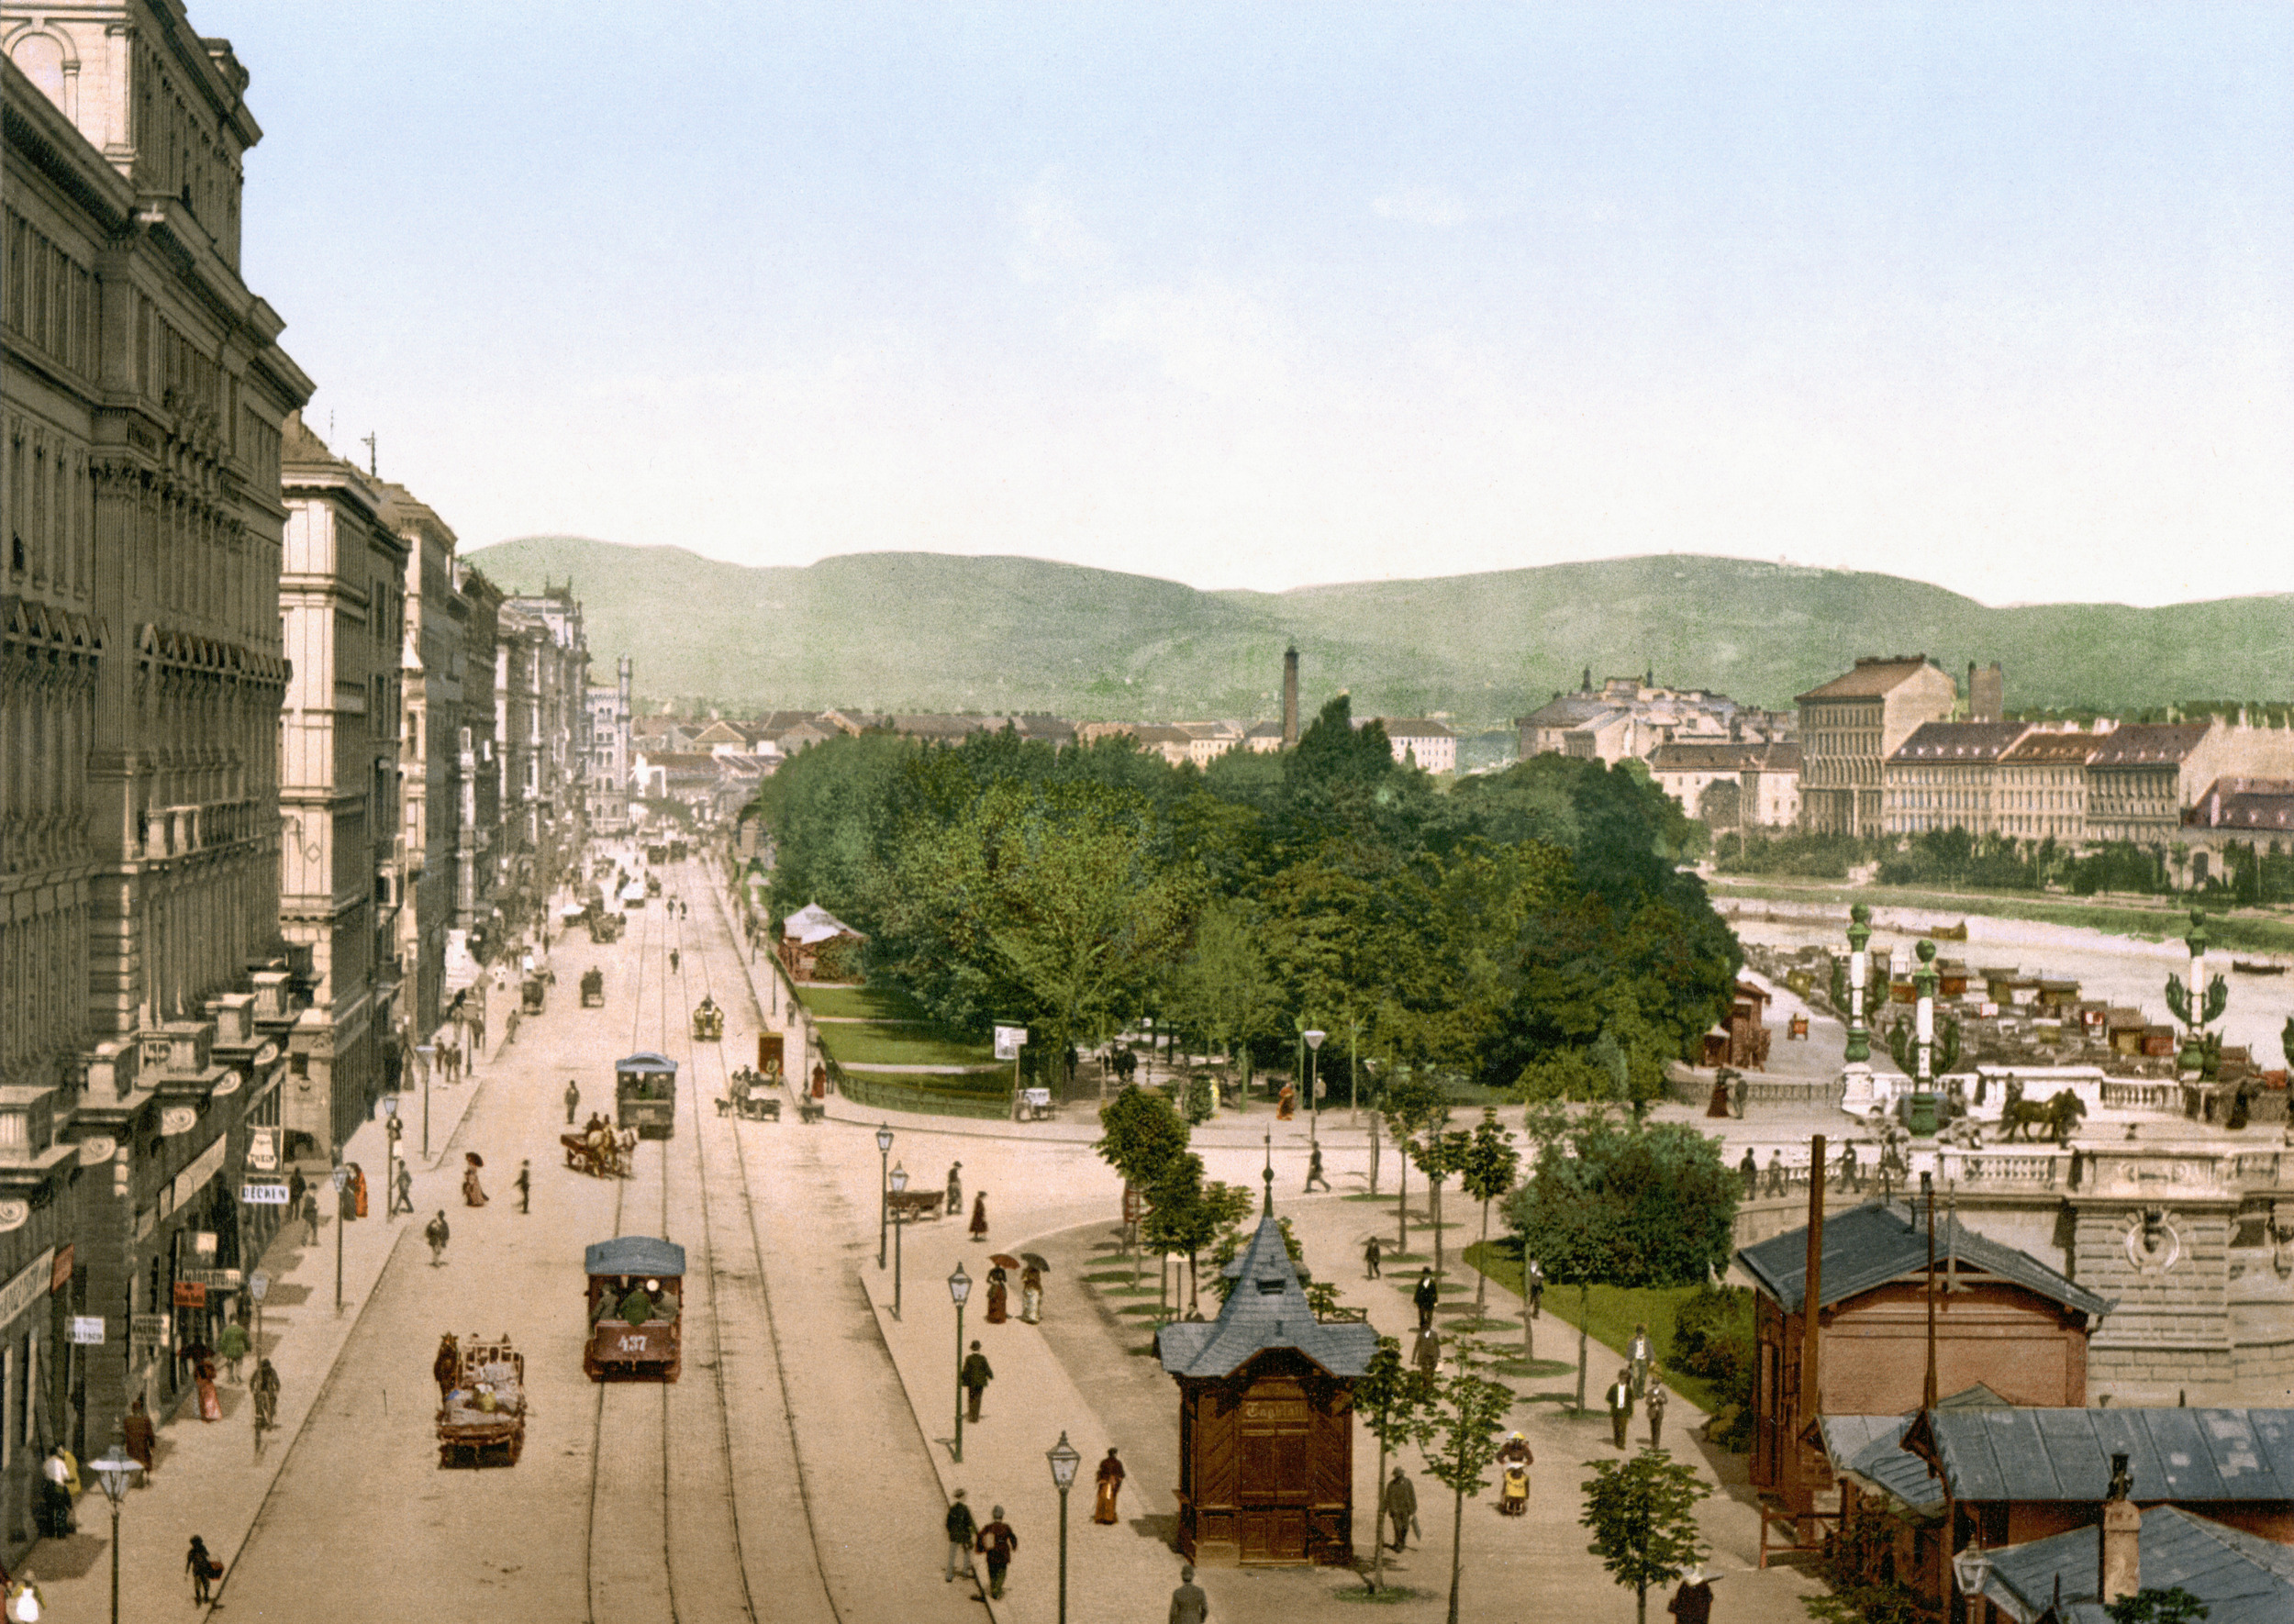 Vienna's Rigstrasse in 1900.  Public Domain image from Wikimedia Commons.